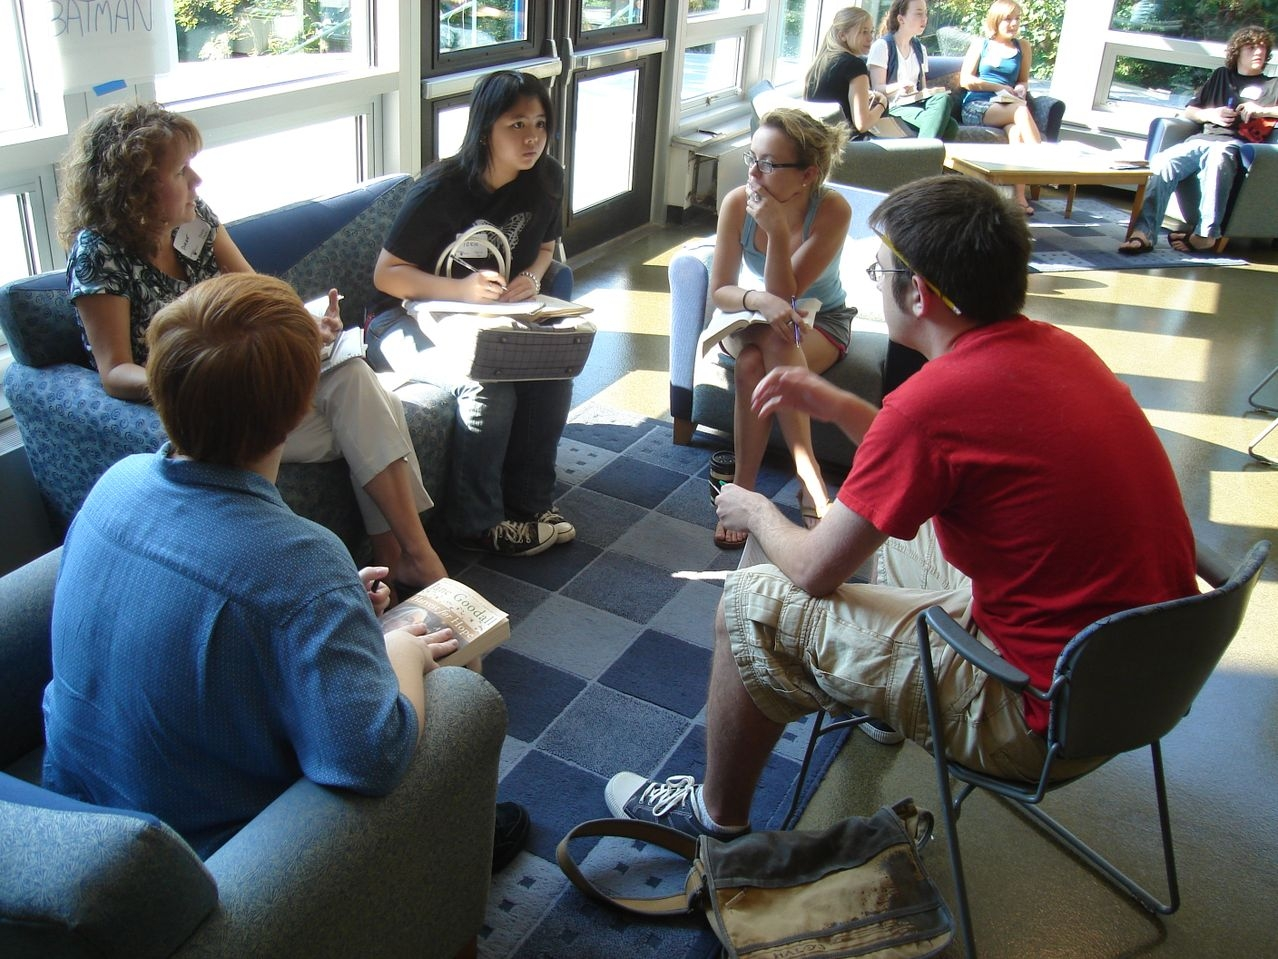 Penn State students in small discussion group